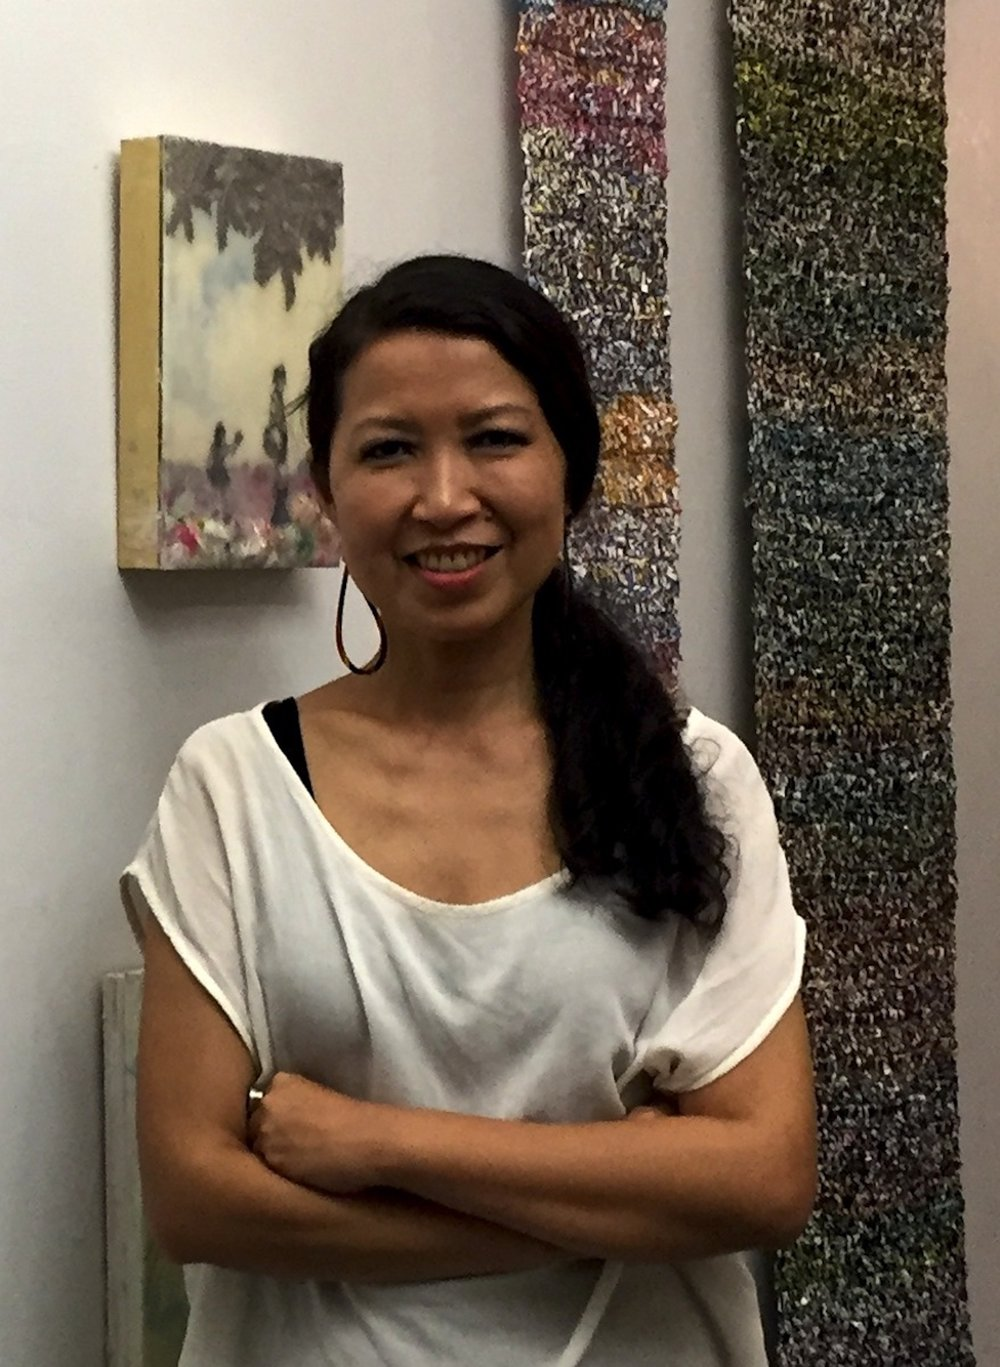 Cecile Chong in her studio. Photo Credit: Anjuli Rathod